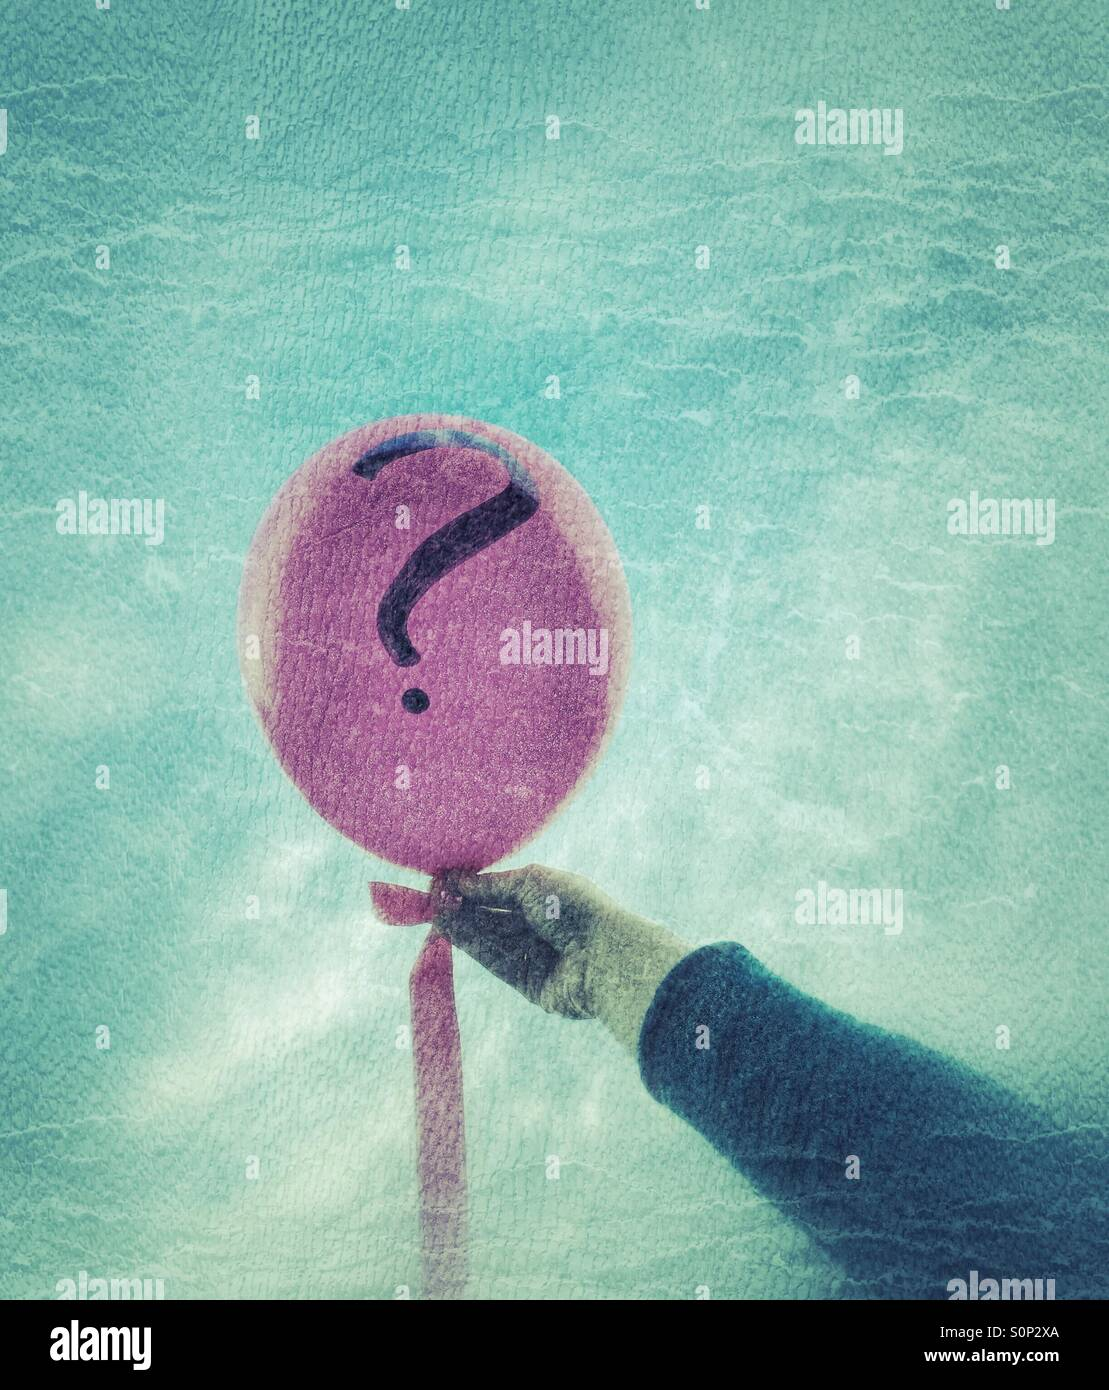 A woman holding a balloon with a question mark. - Stock Image